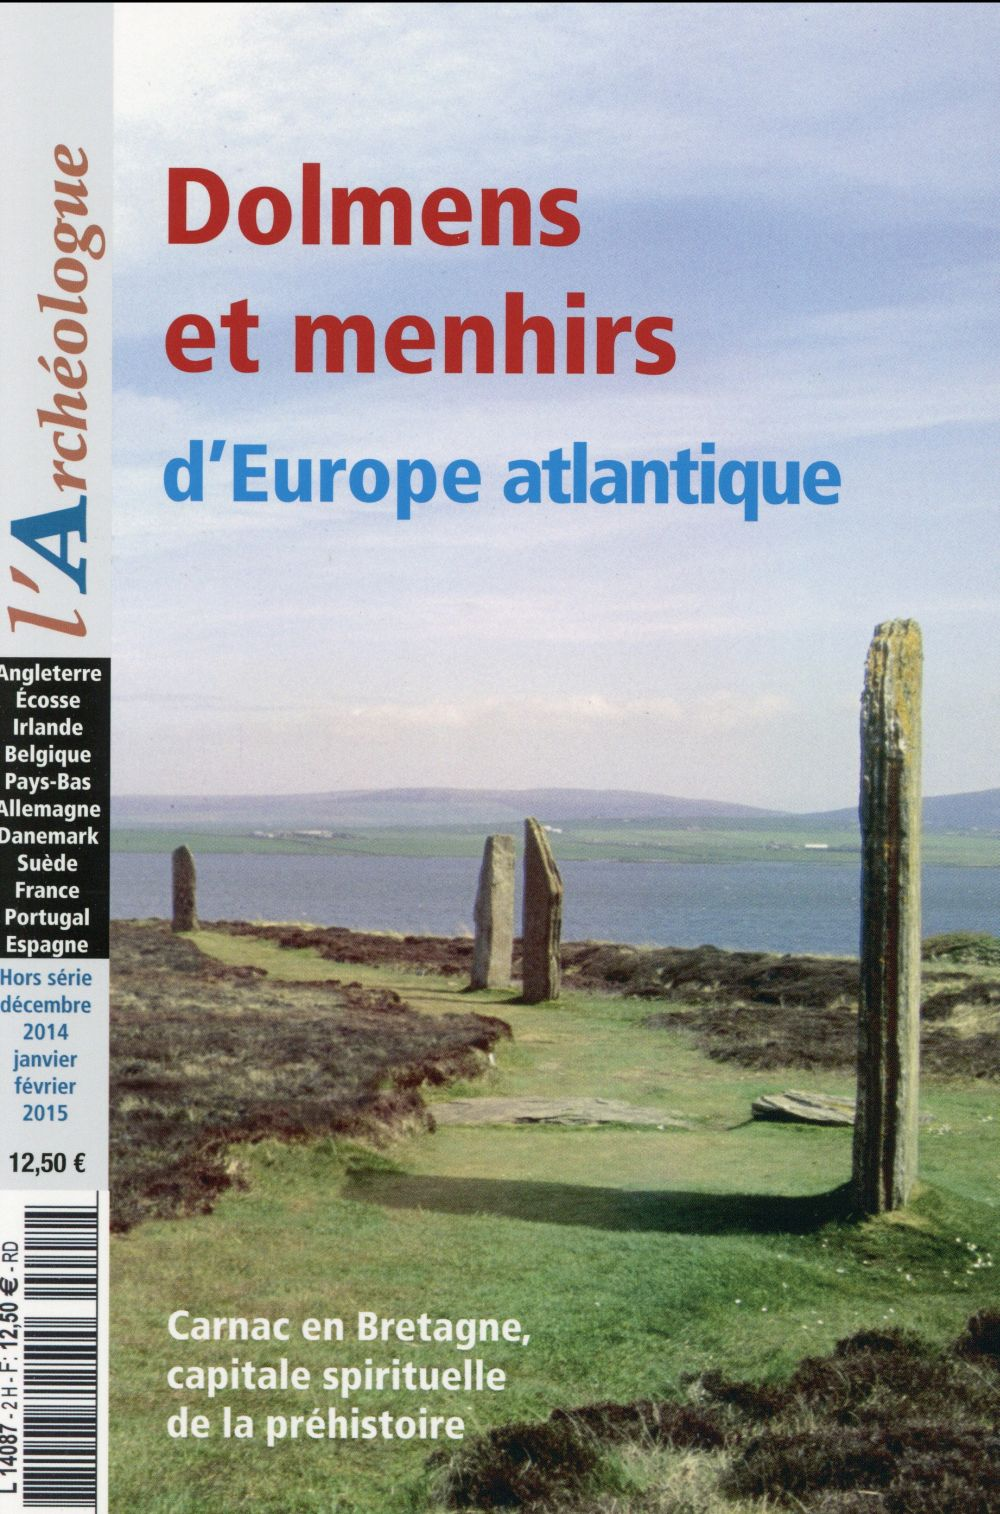 L'ARCHEOLOGUE HS DOLMENS ET MENHIRS D'EUROPE ATLANTIQUE